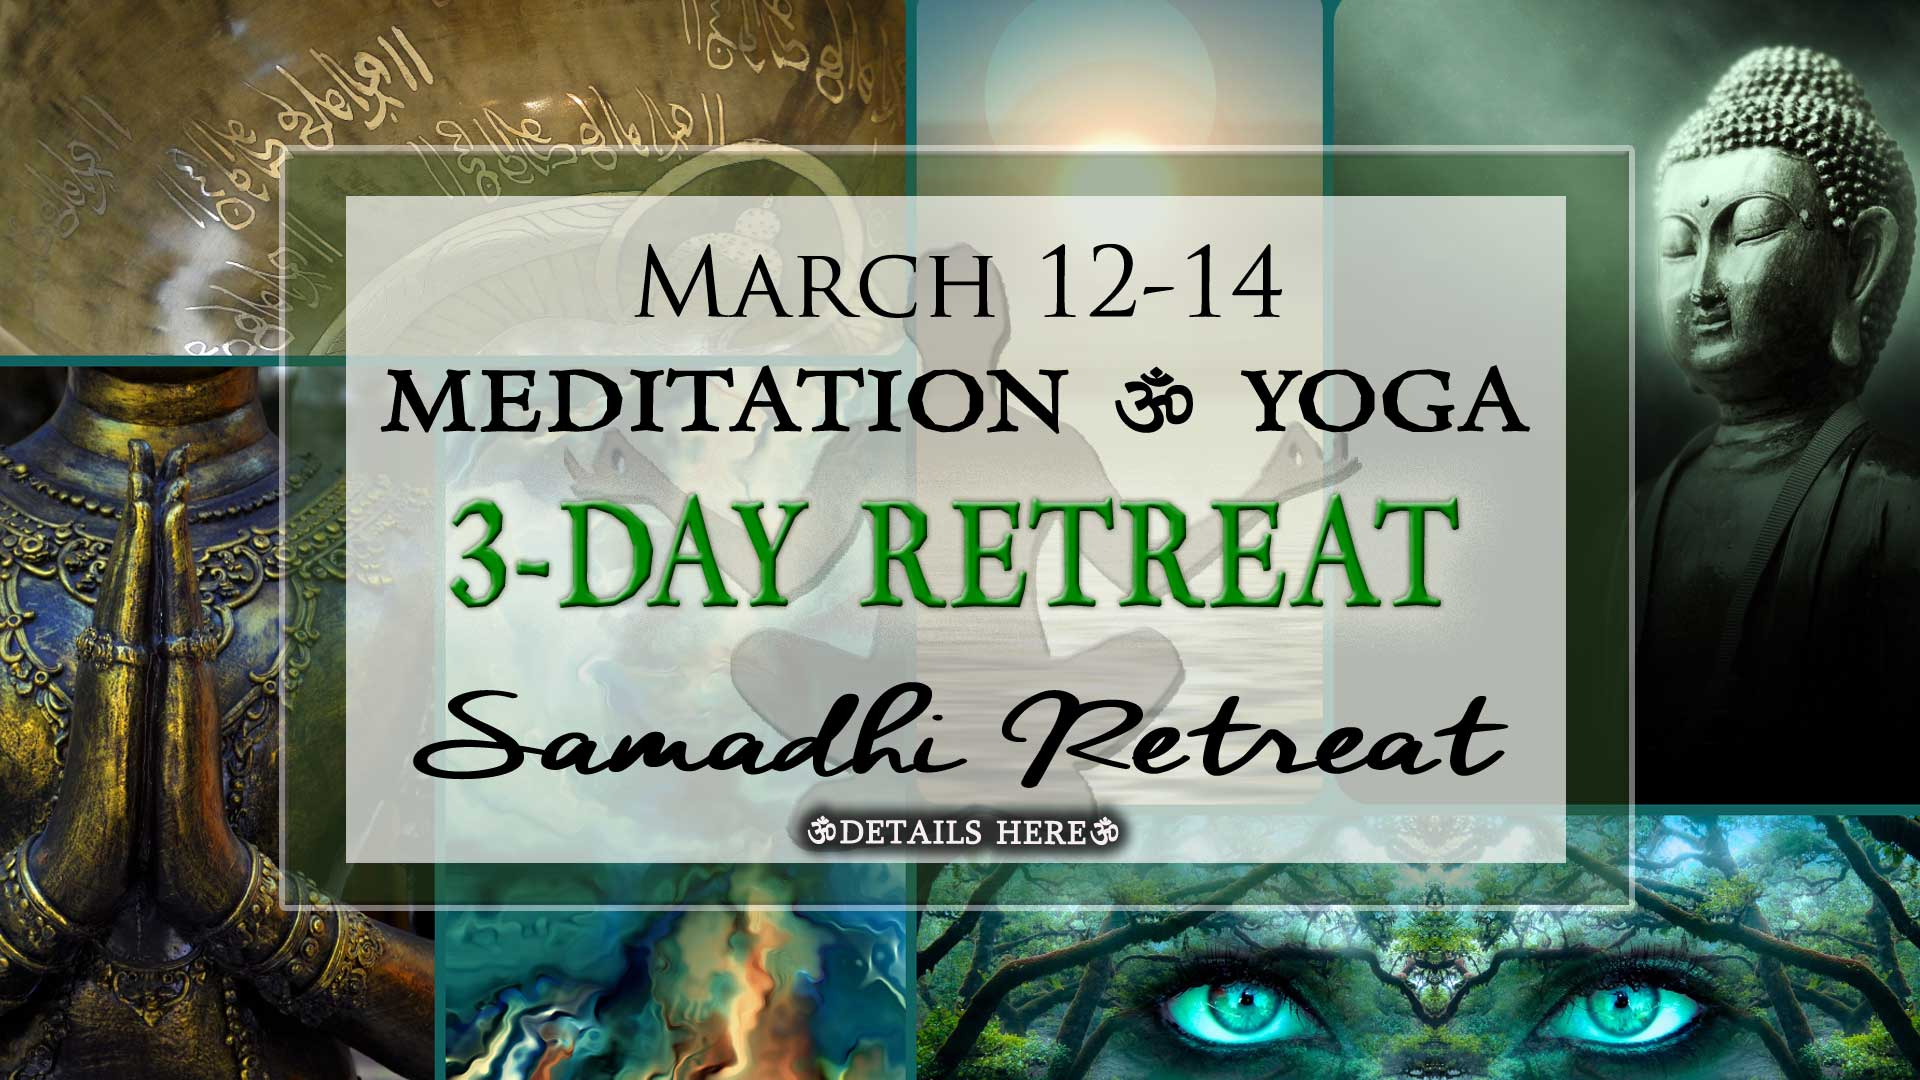 Imagine Experience God at a Samadhi Silent Retreat; Discover God Within